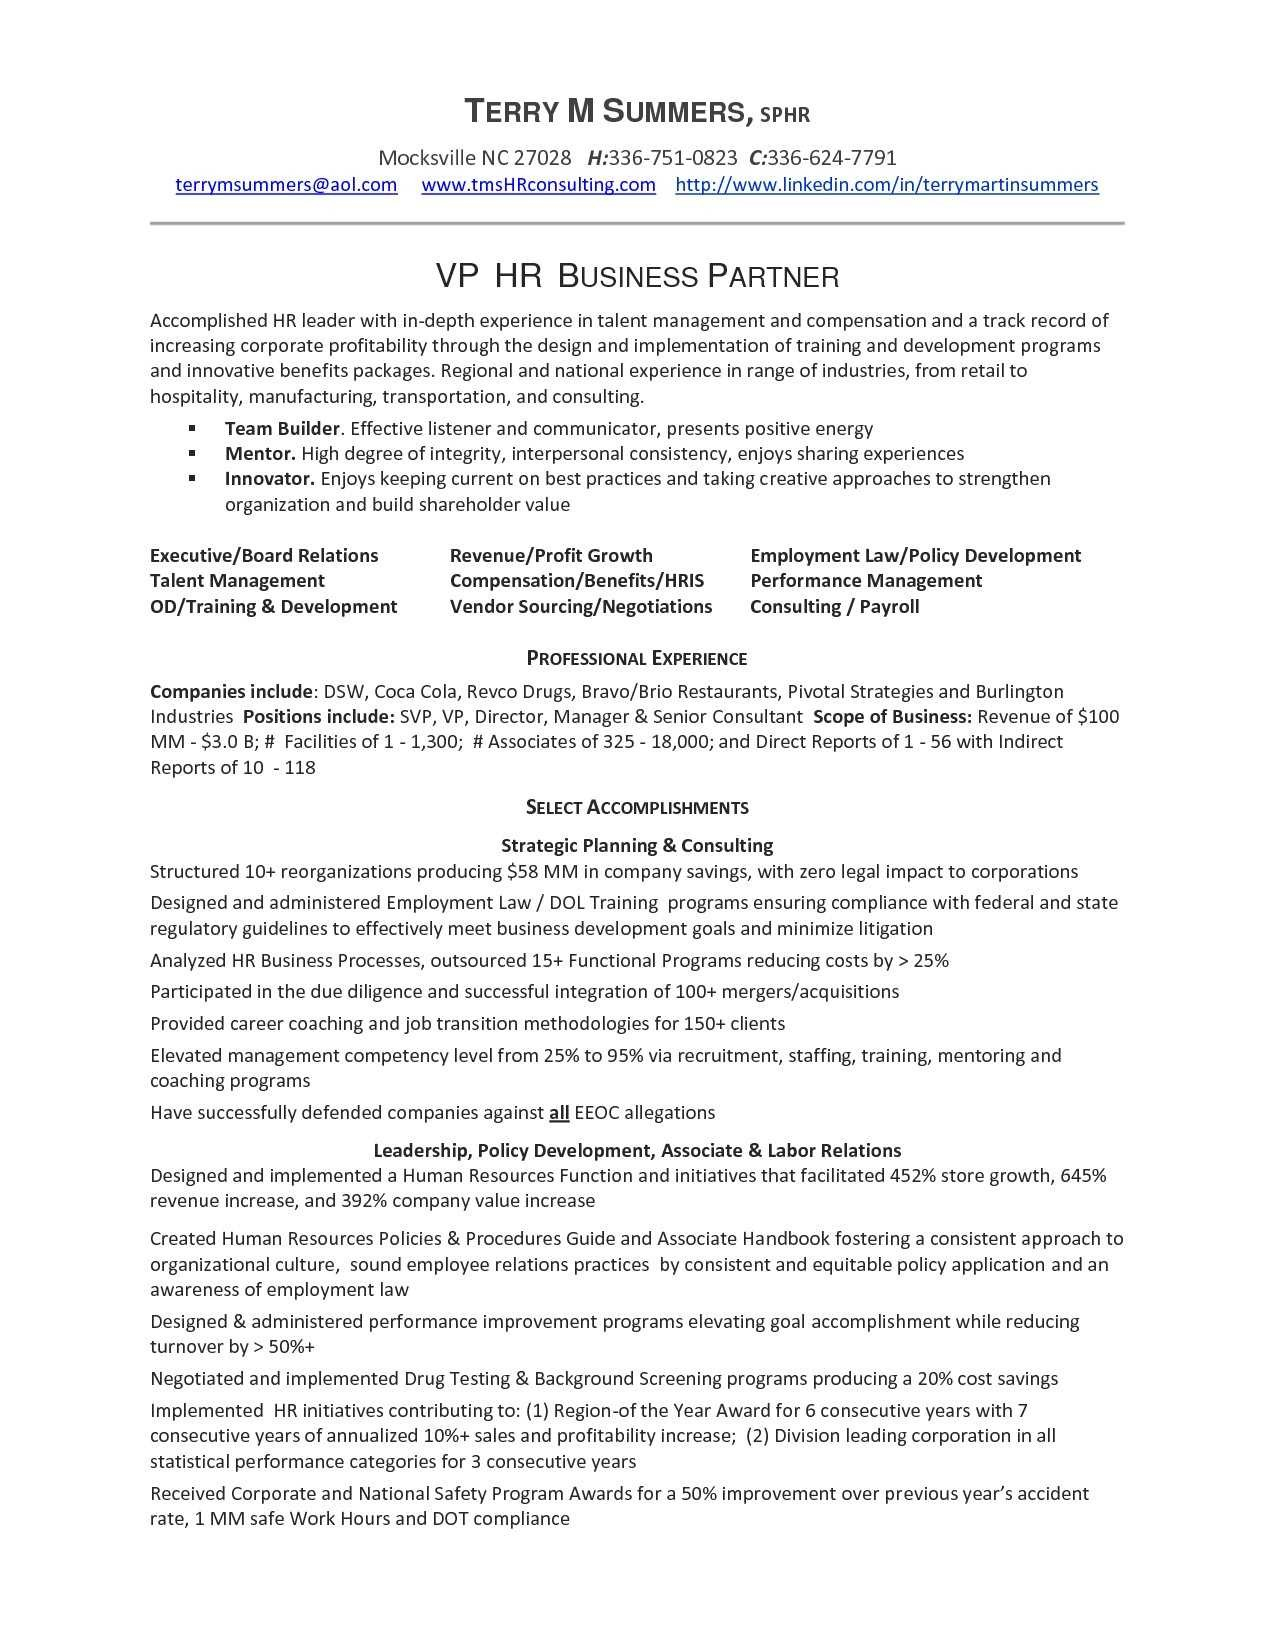 Letter Of Intent Template Business Partnership - Partnership Business Agreement Template Valid Sample Business